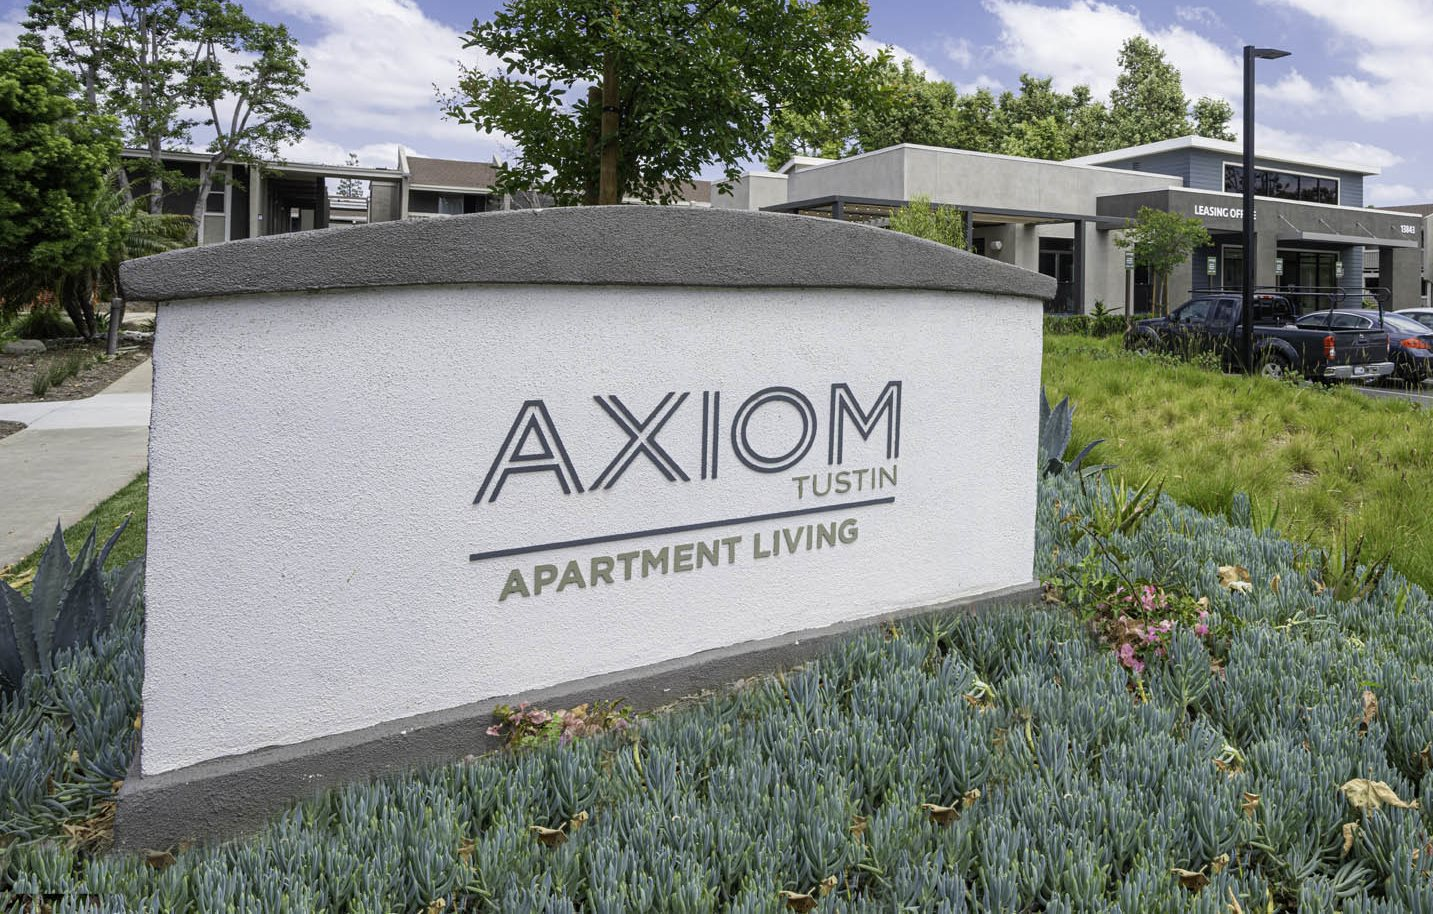 Axiom Tustin Apartments Exterior